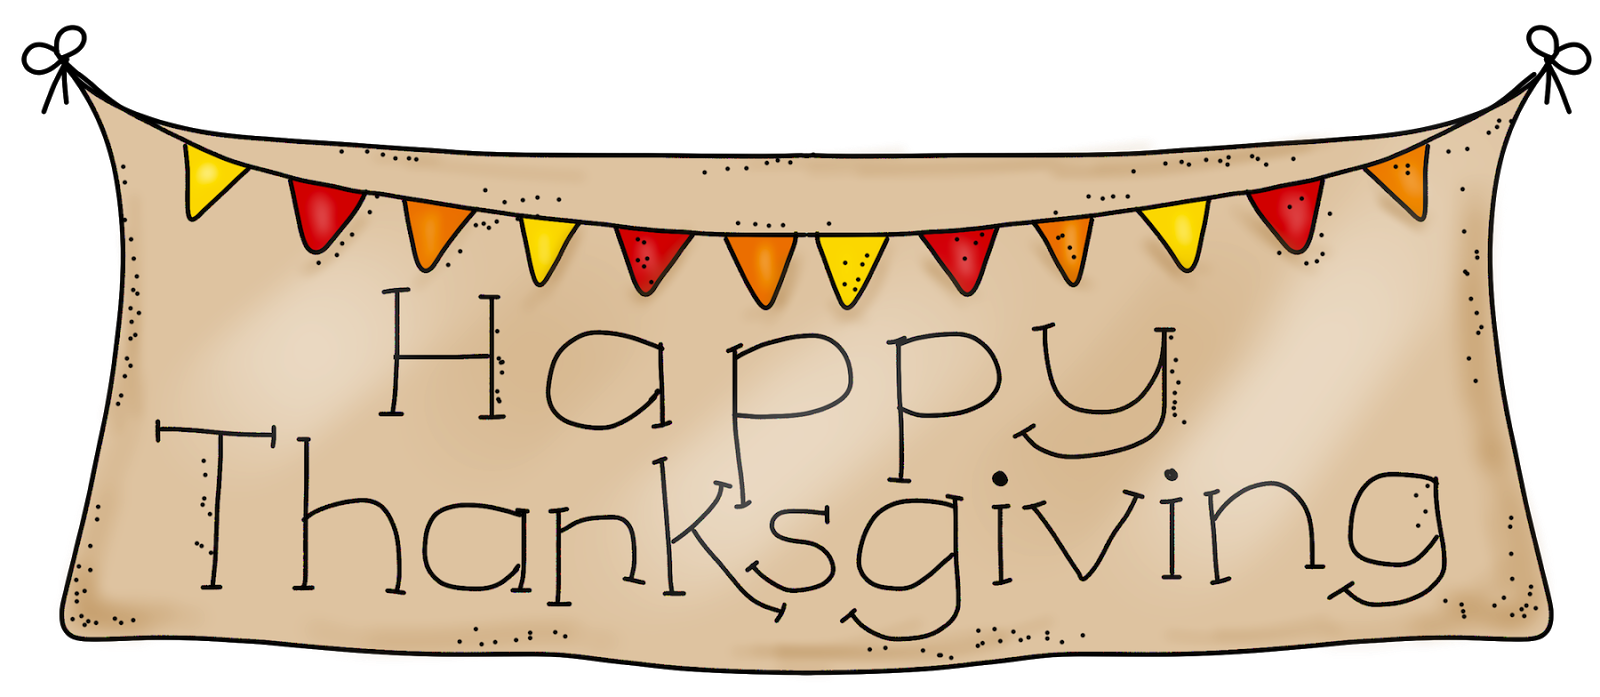 Baptist thanksgiving clipart clip freeuse download Greetings from Guatemala: November 2017 Newsletter clip freeuse download